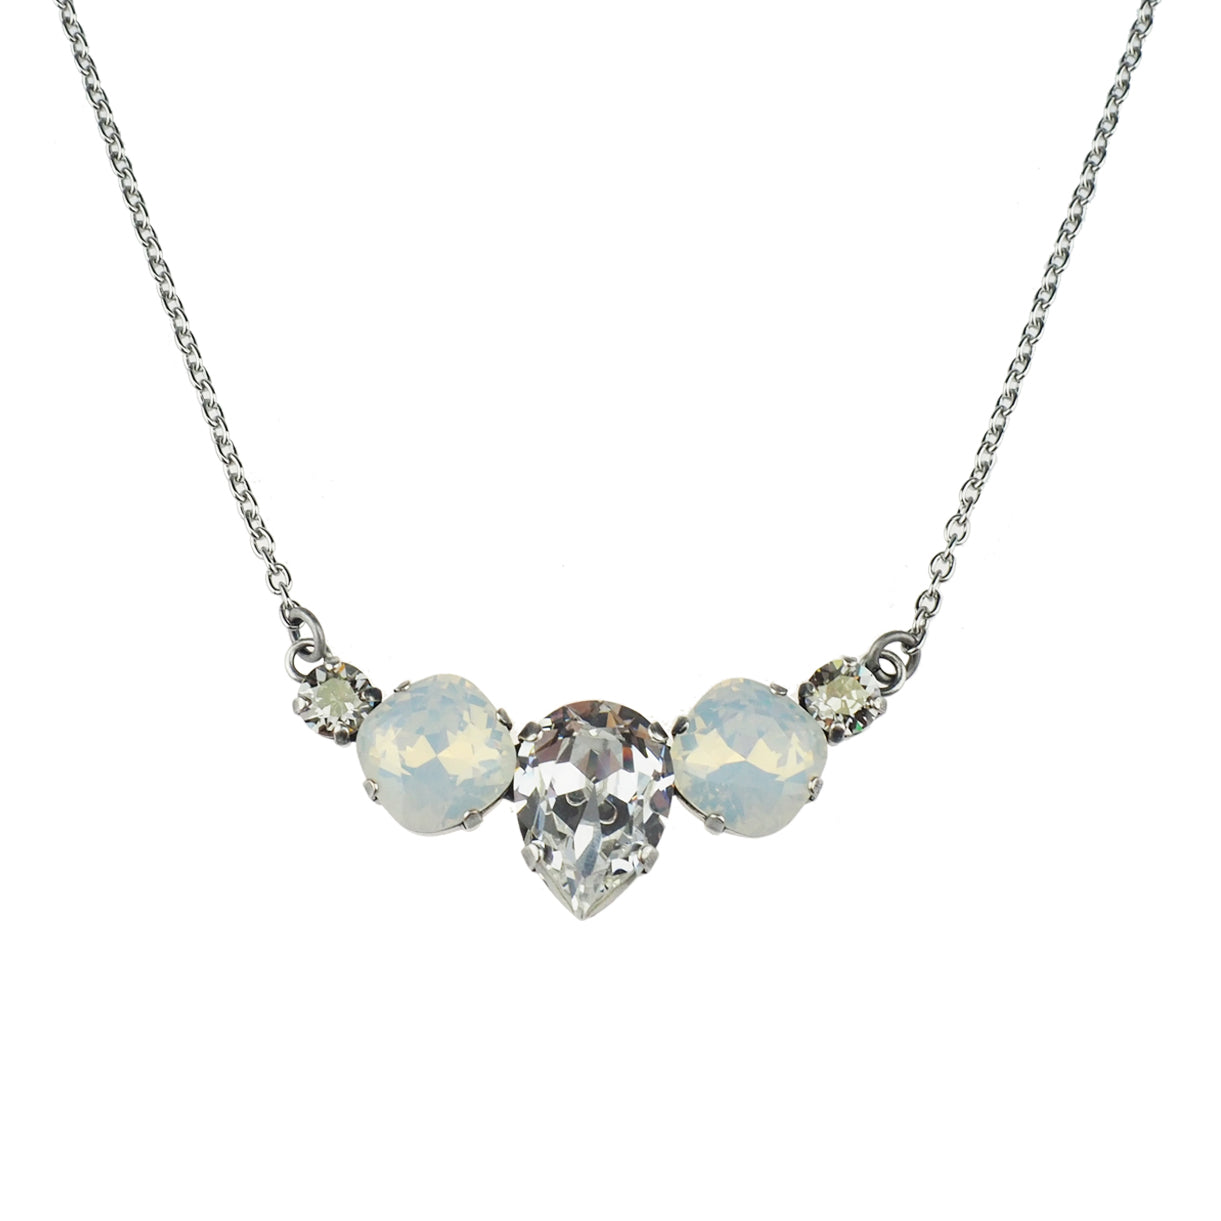 Hearts and Wishes Necklace - White Opal